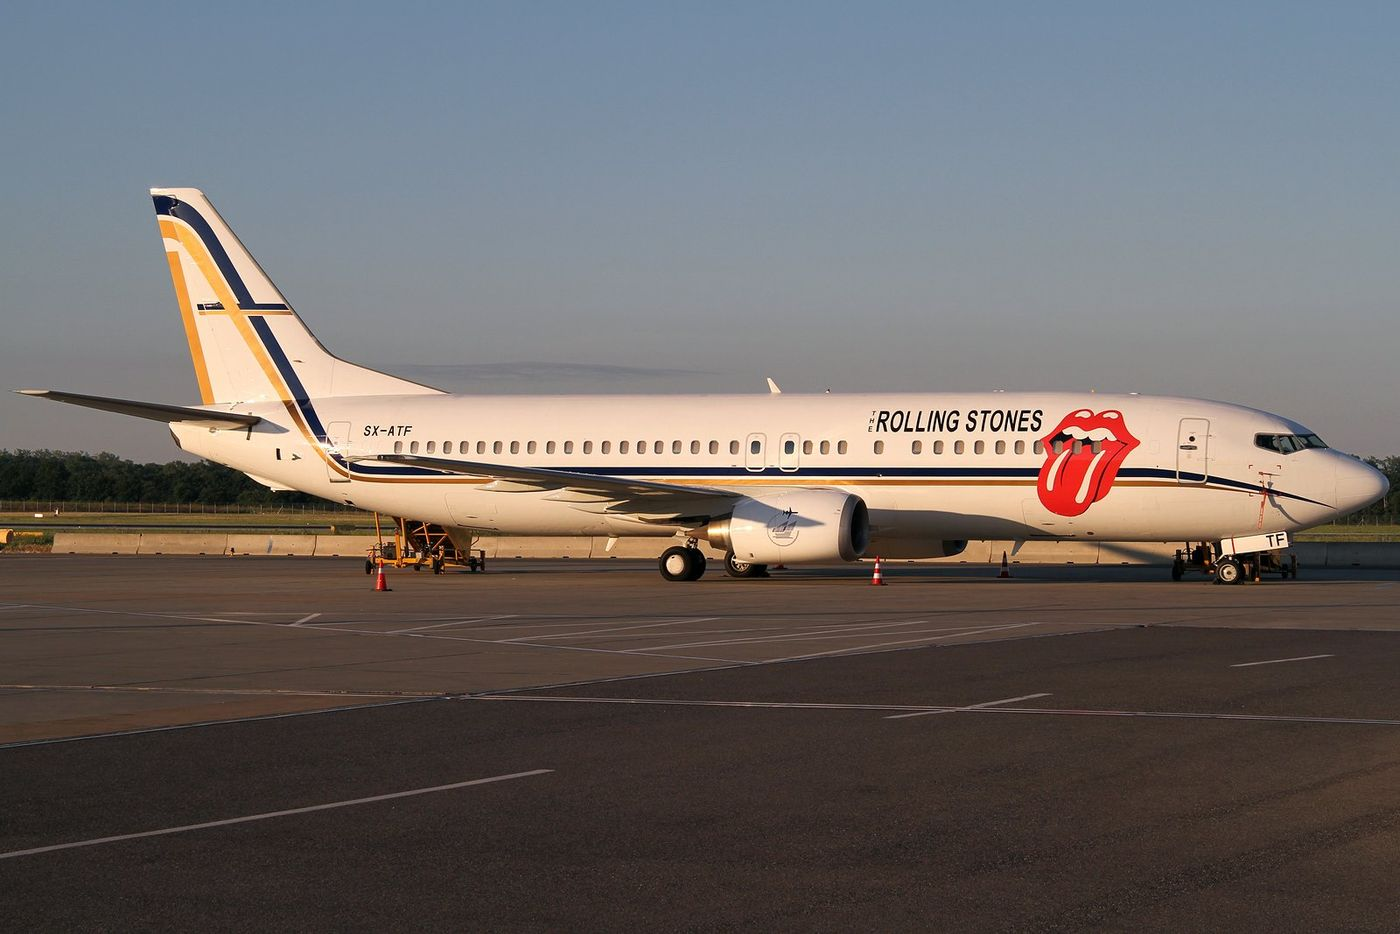 http://cdn.antenne.de/thumbs/images/galleries/318225/54022_rolling-stones_wien-airport-juni-2014_bernd-k.d160ff77.jpg